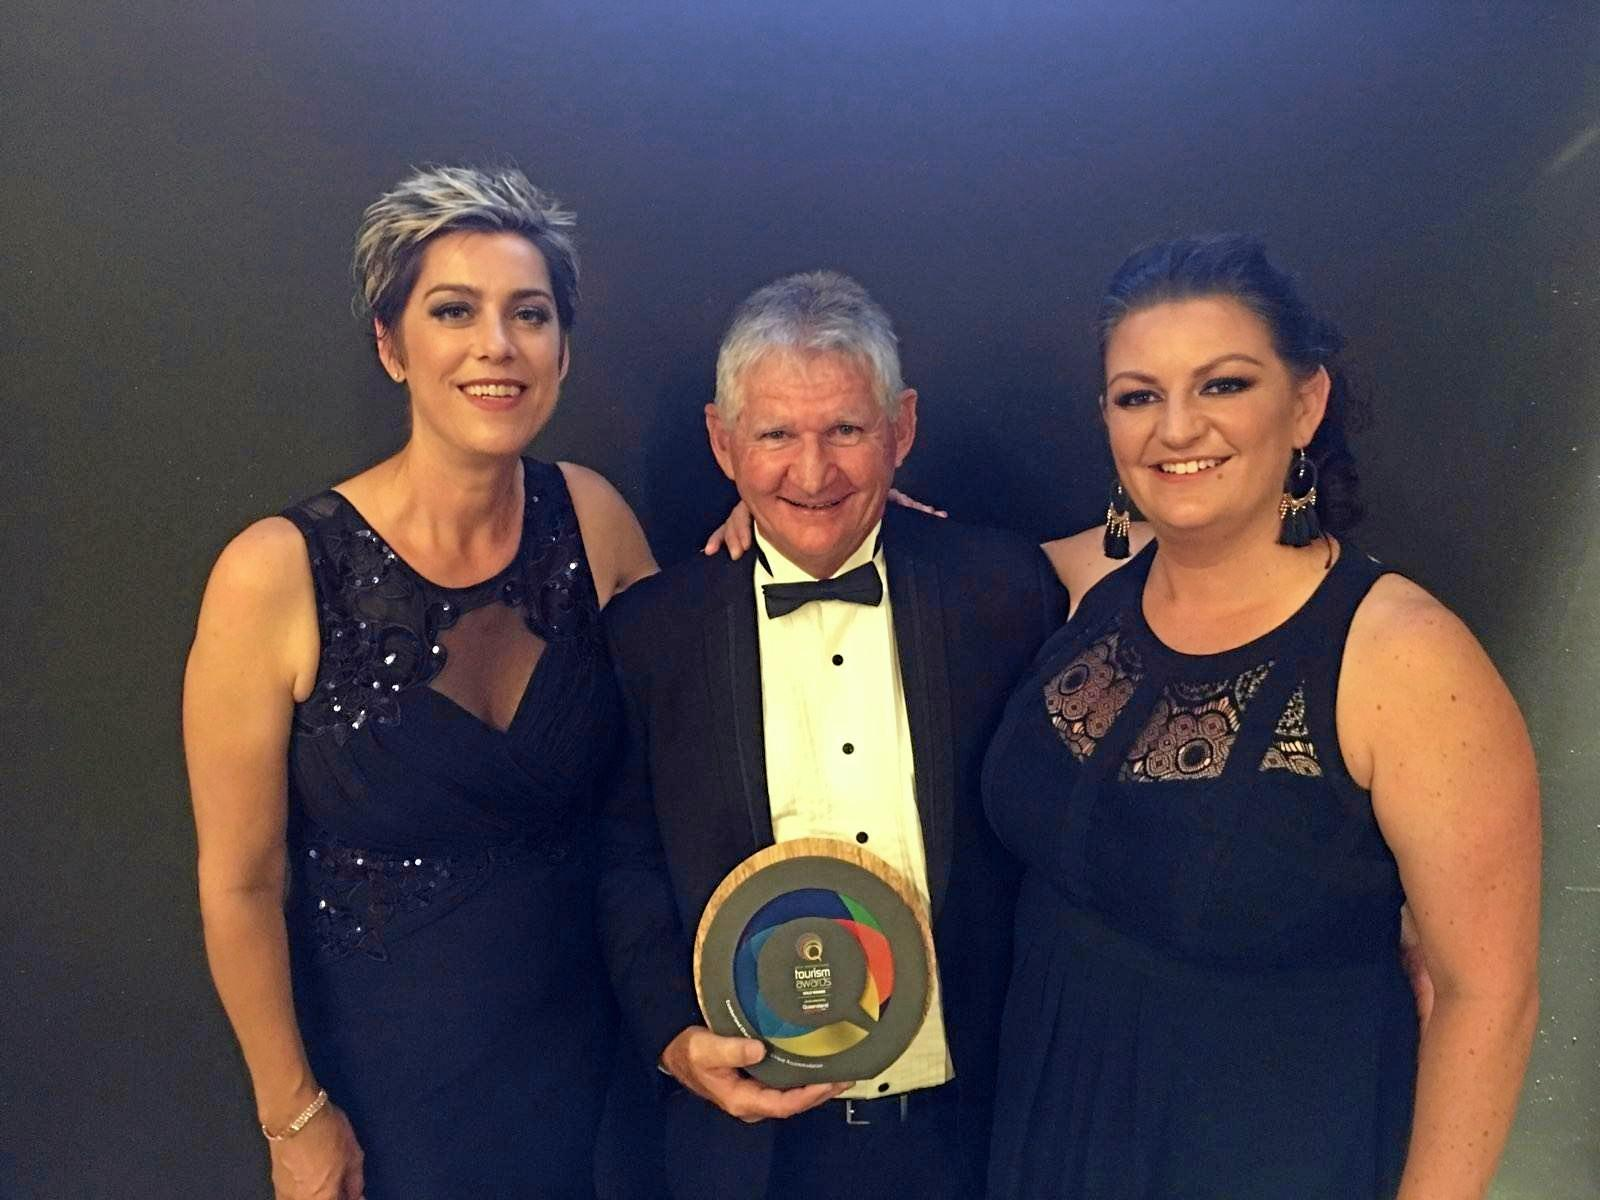 Cumberland Charter Yachts general manager Sharon McNally, managing director Charlie Preen and sales and marketing manager Mercedes Ireland at the 2019 Queensland Tourism Awards. Cumberland Charter Yacht picked up gold in the unique accommodation category.